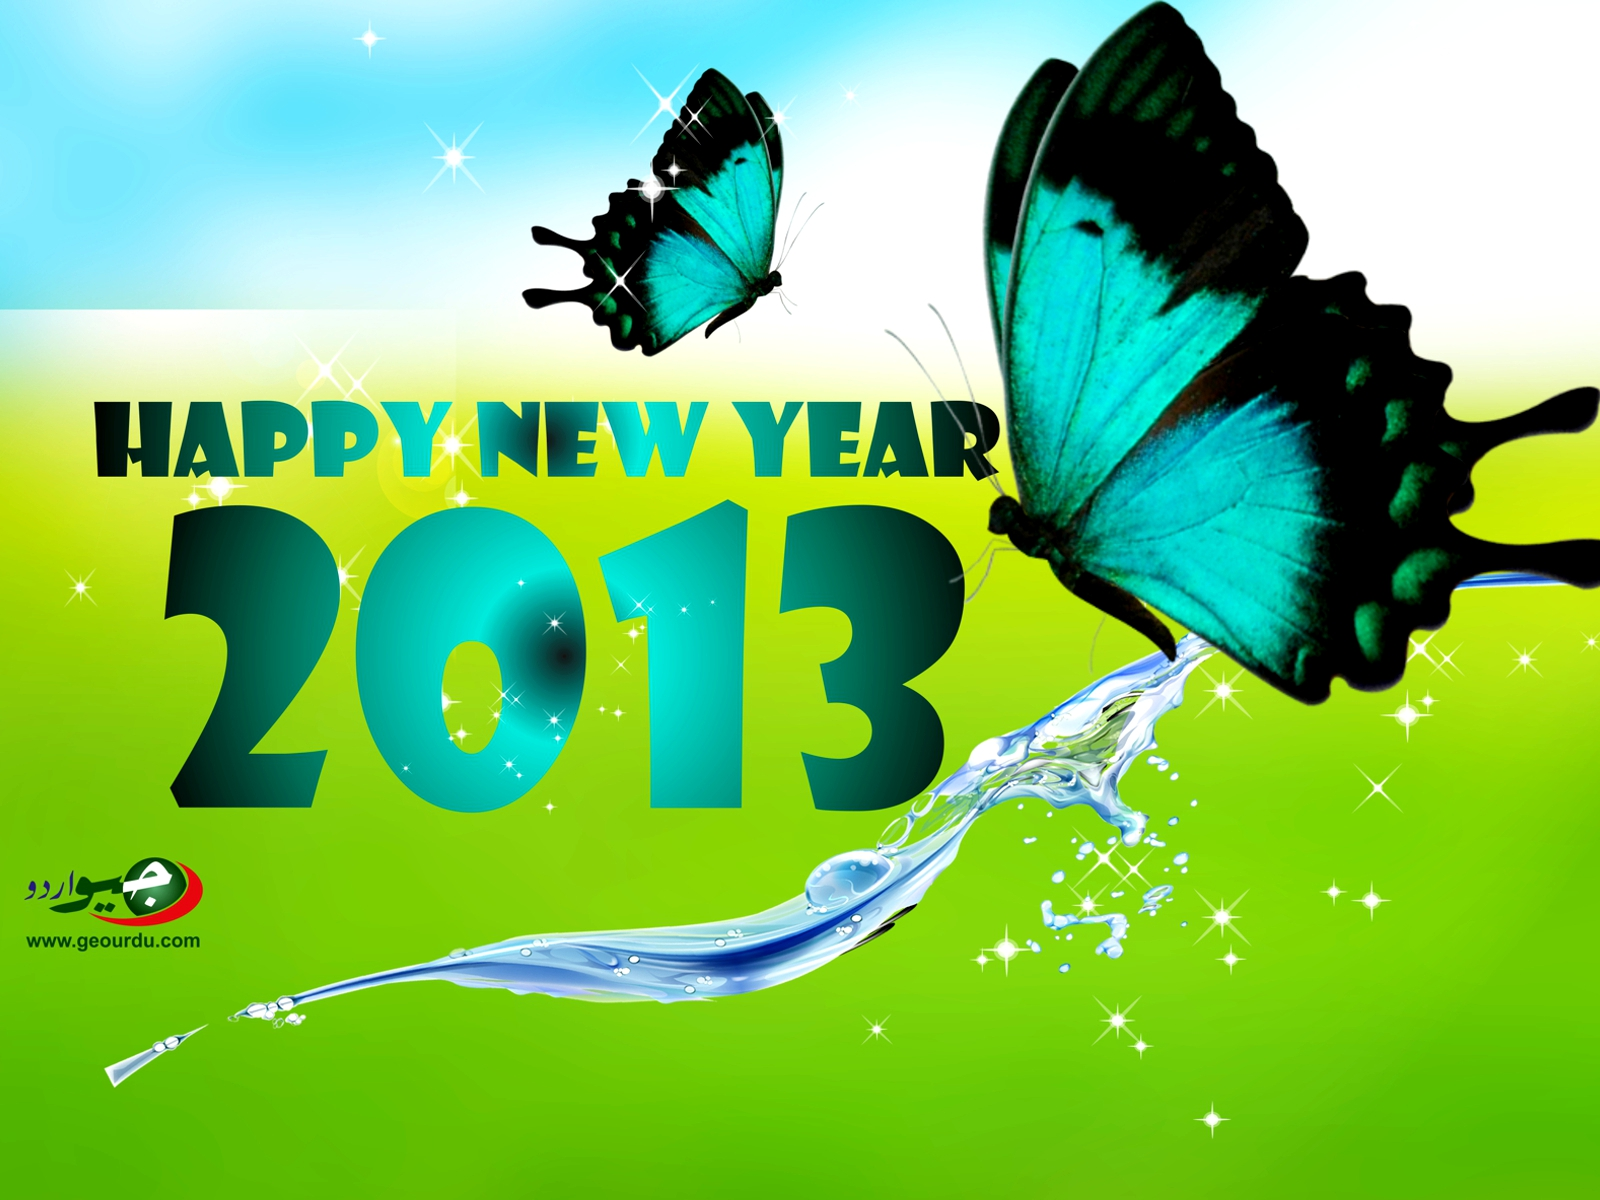 Happy New Year 2013 Wallpaper Wide 1600×1200